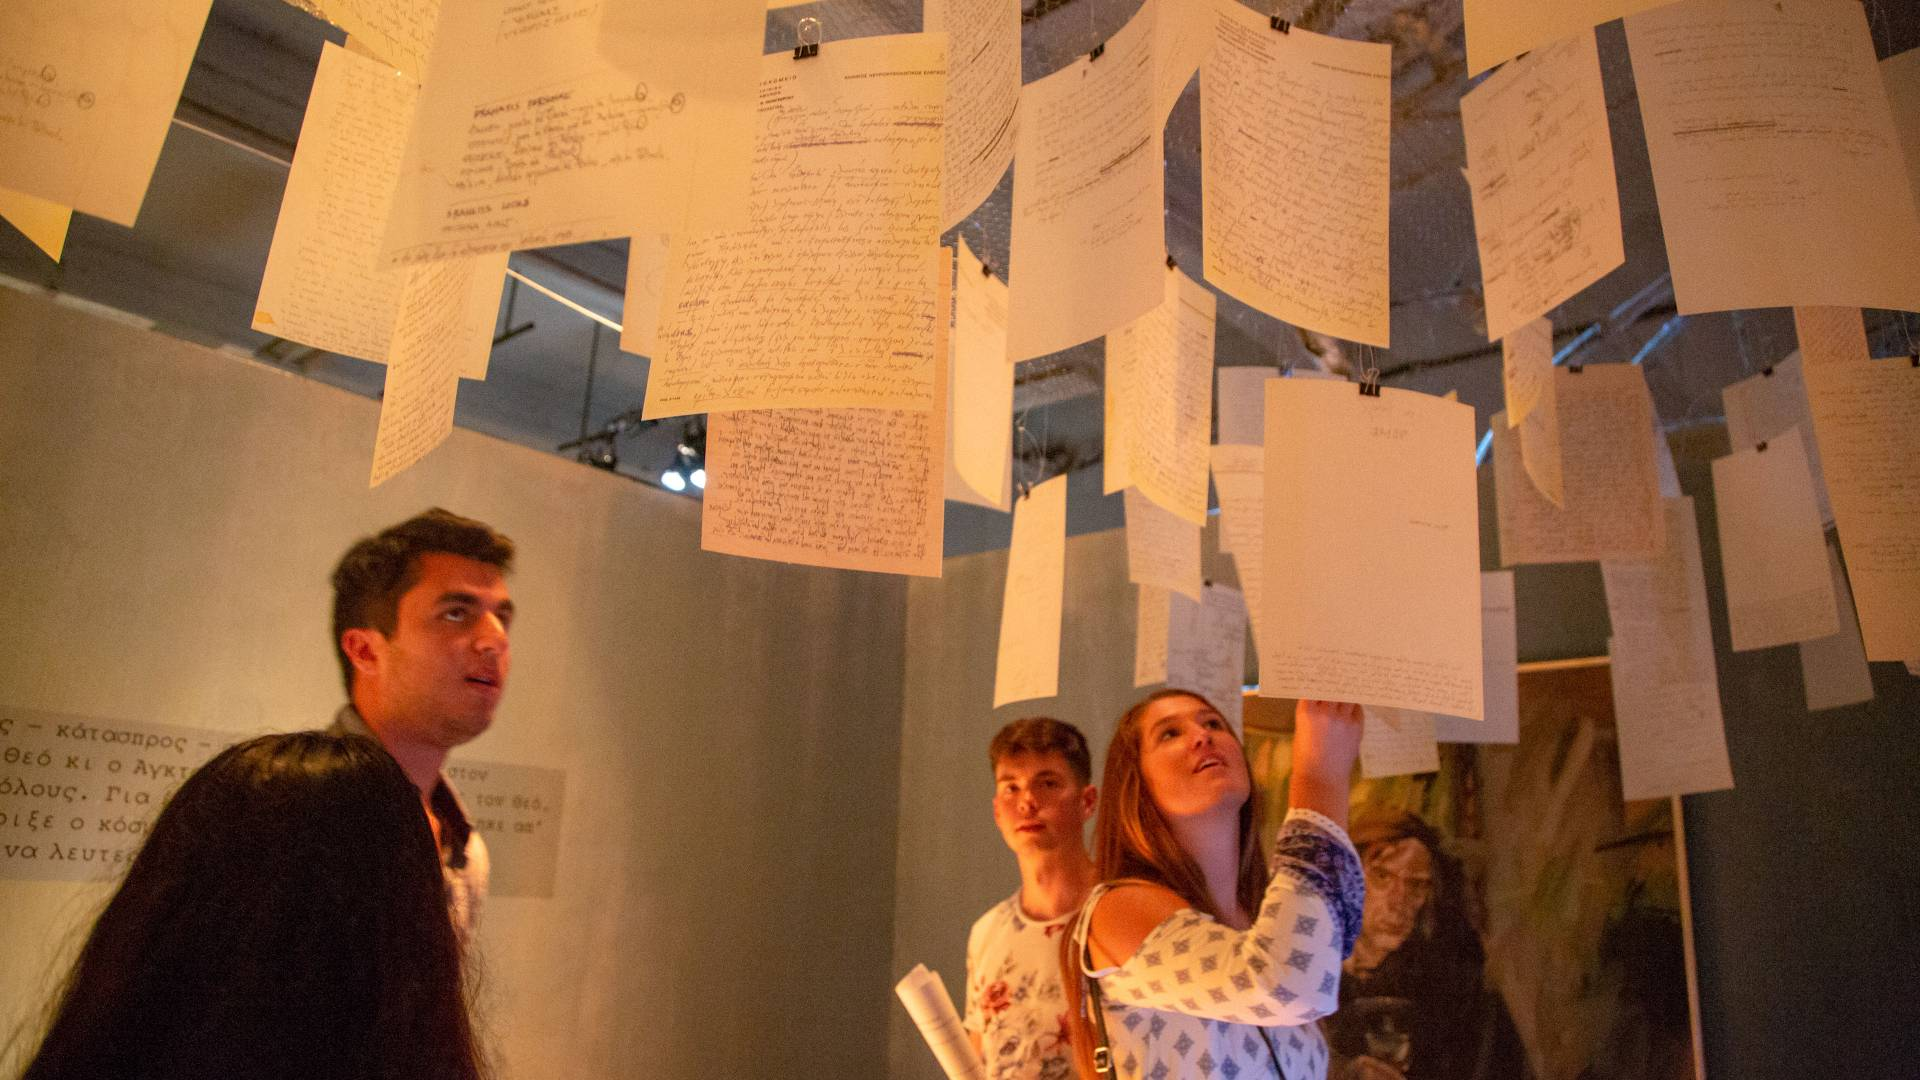 Students looking at art installation in Athens, Greece